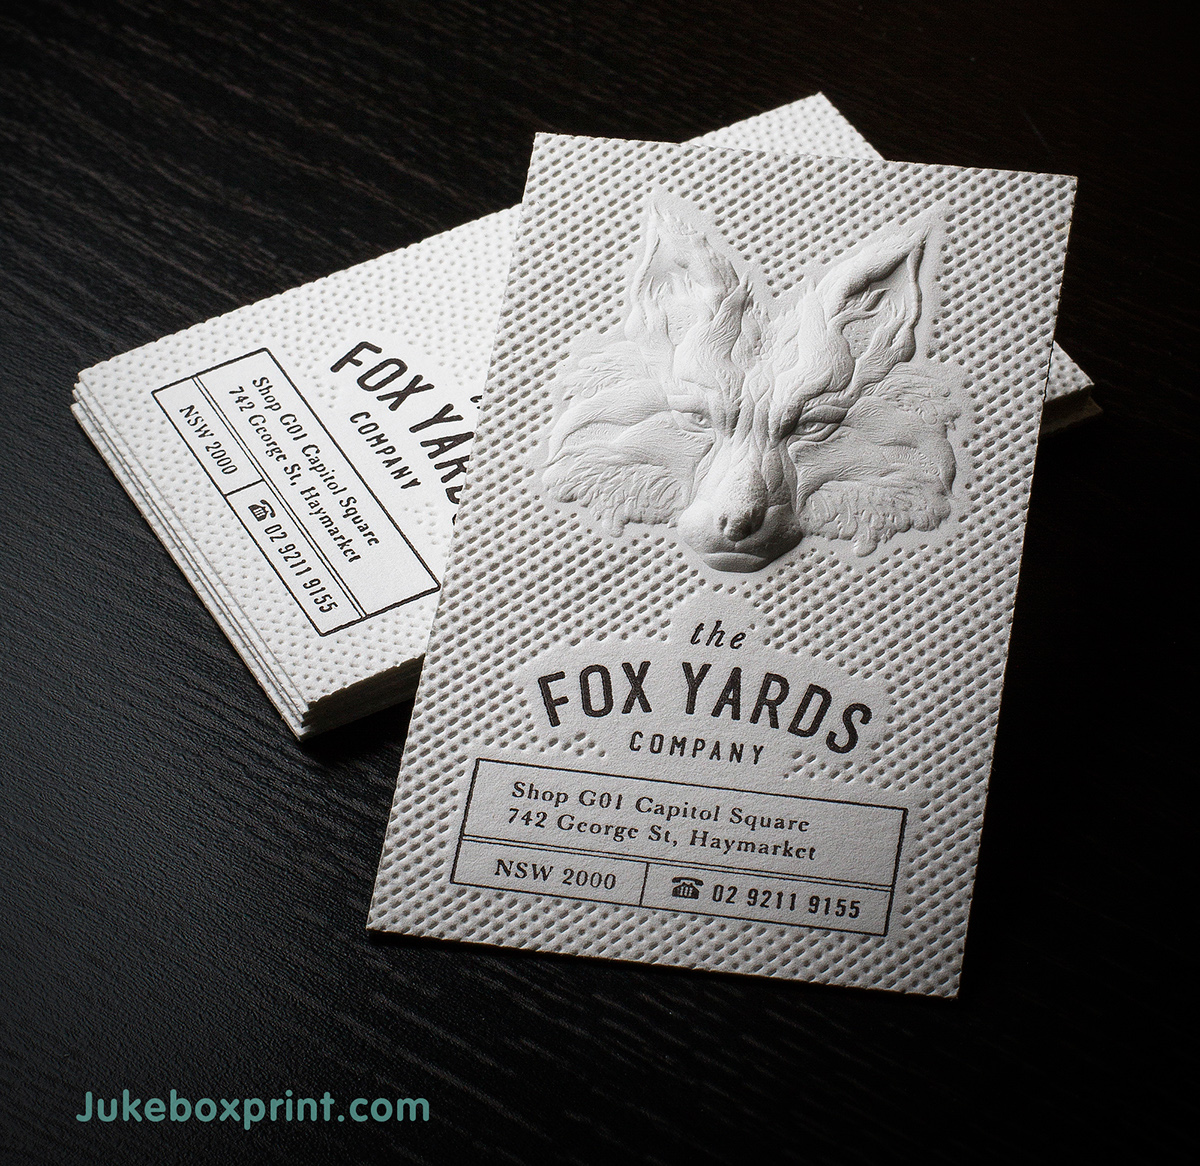 3d embossed business cards produced with letterpress on behance - 3 D Business Card